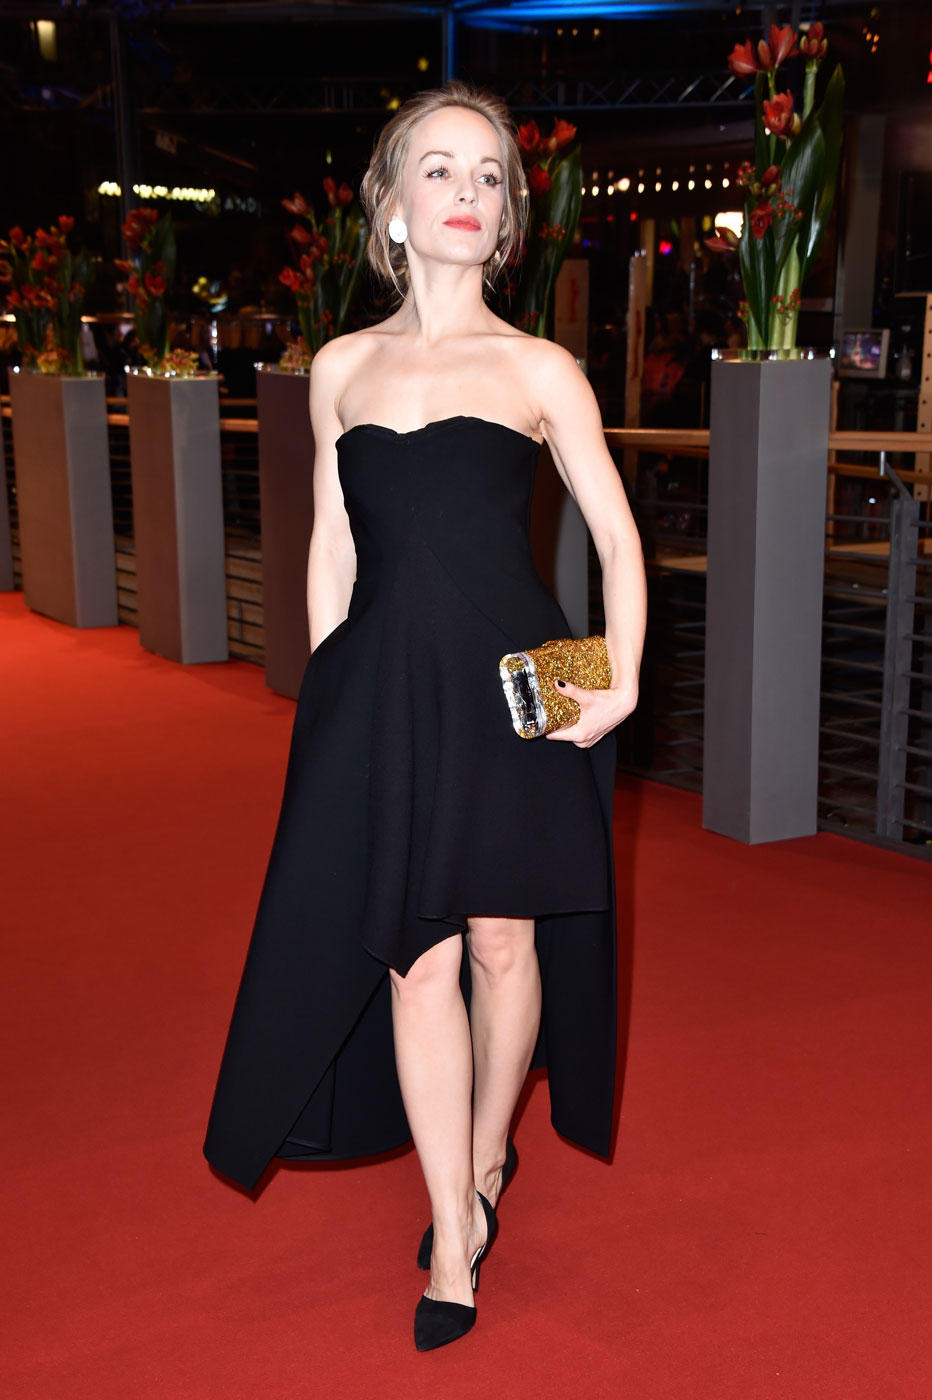 Berlinale 2016: Friederike Kempter